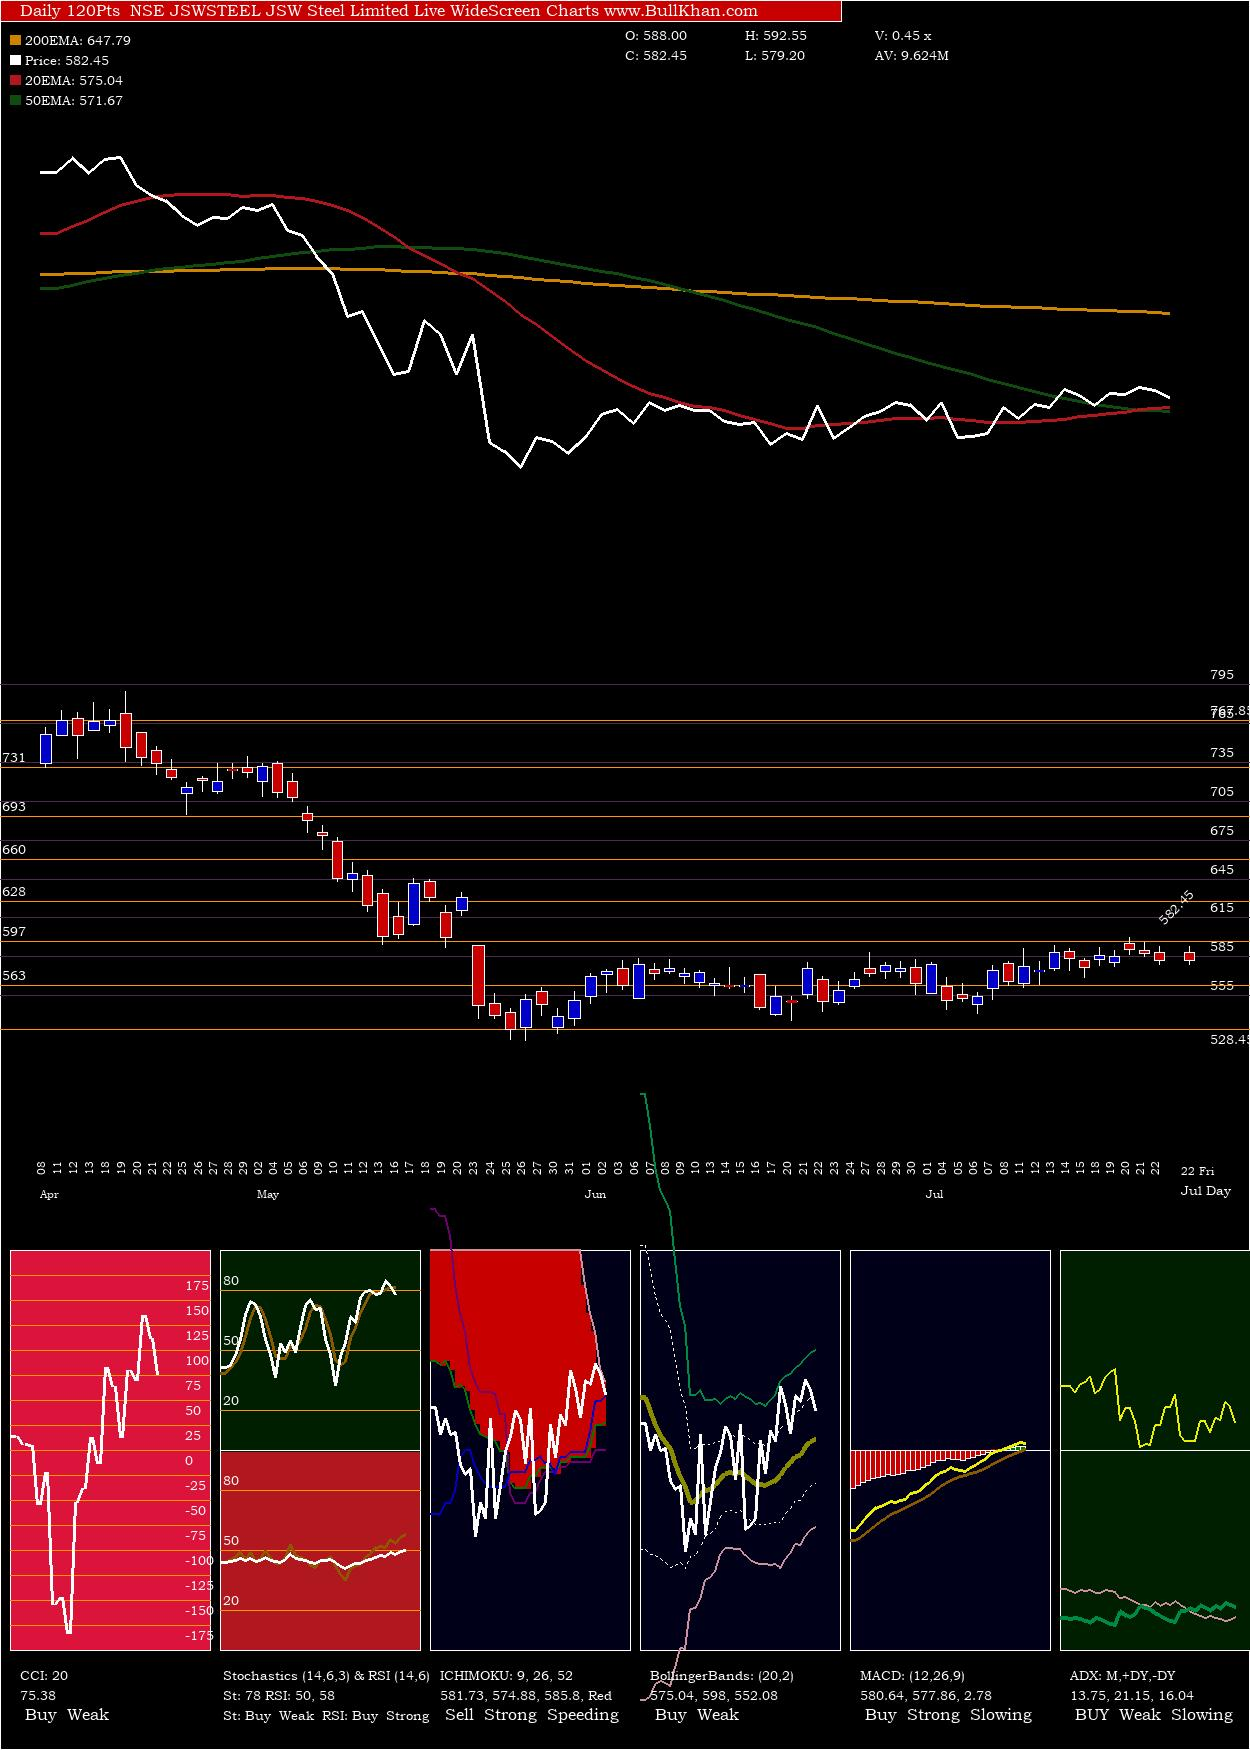 JSW Steel Limited charts and indicators